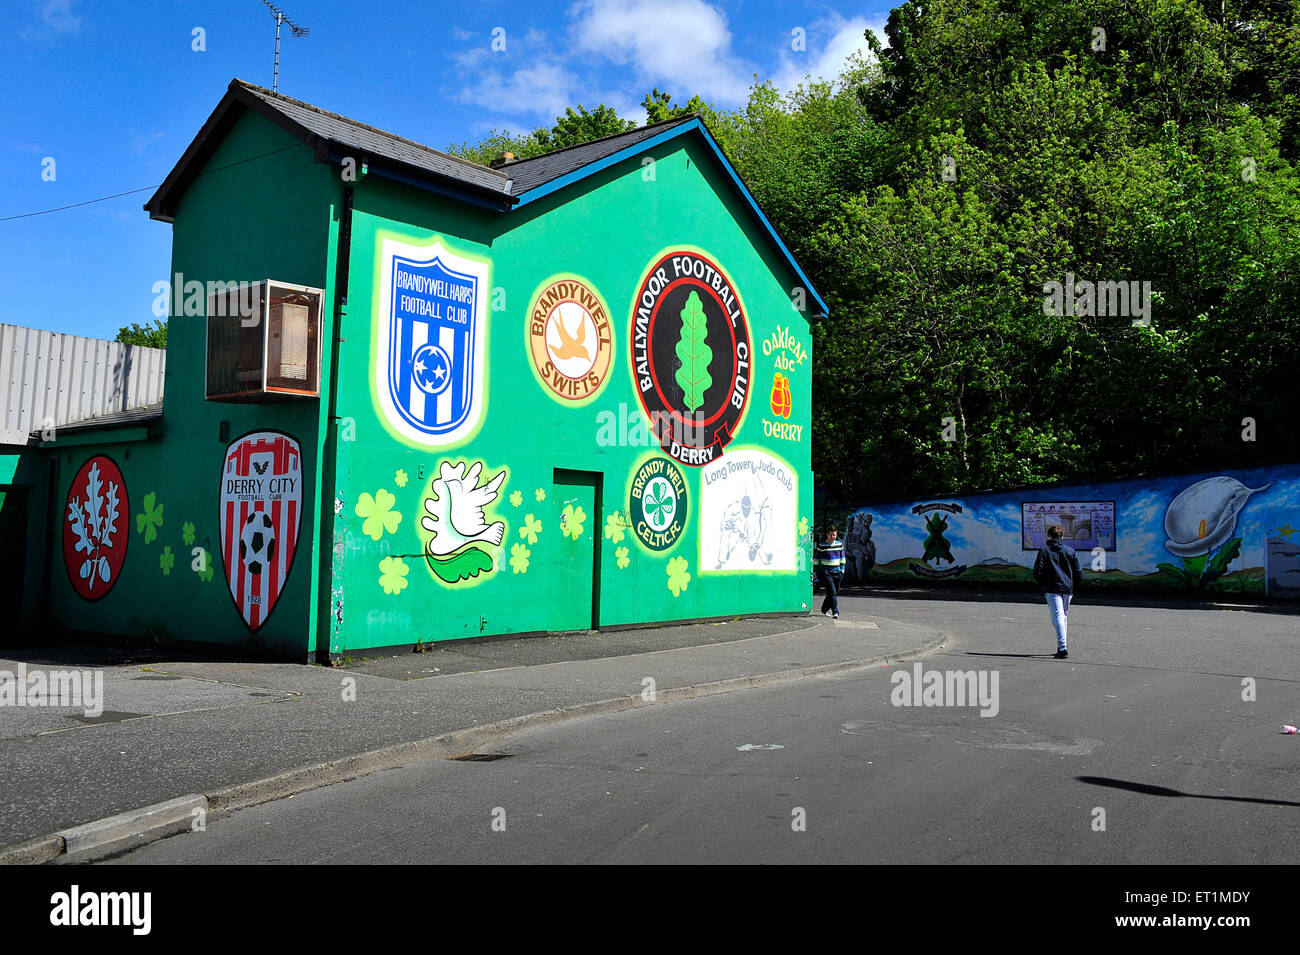 Mdy Pont L Eveque painted crests photos & painted crests images - alamy